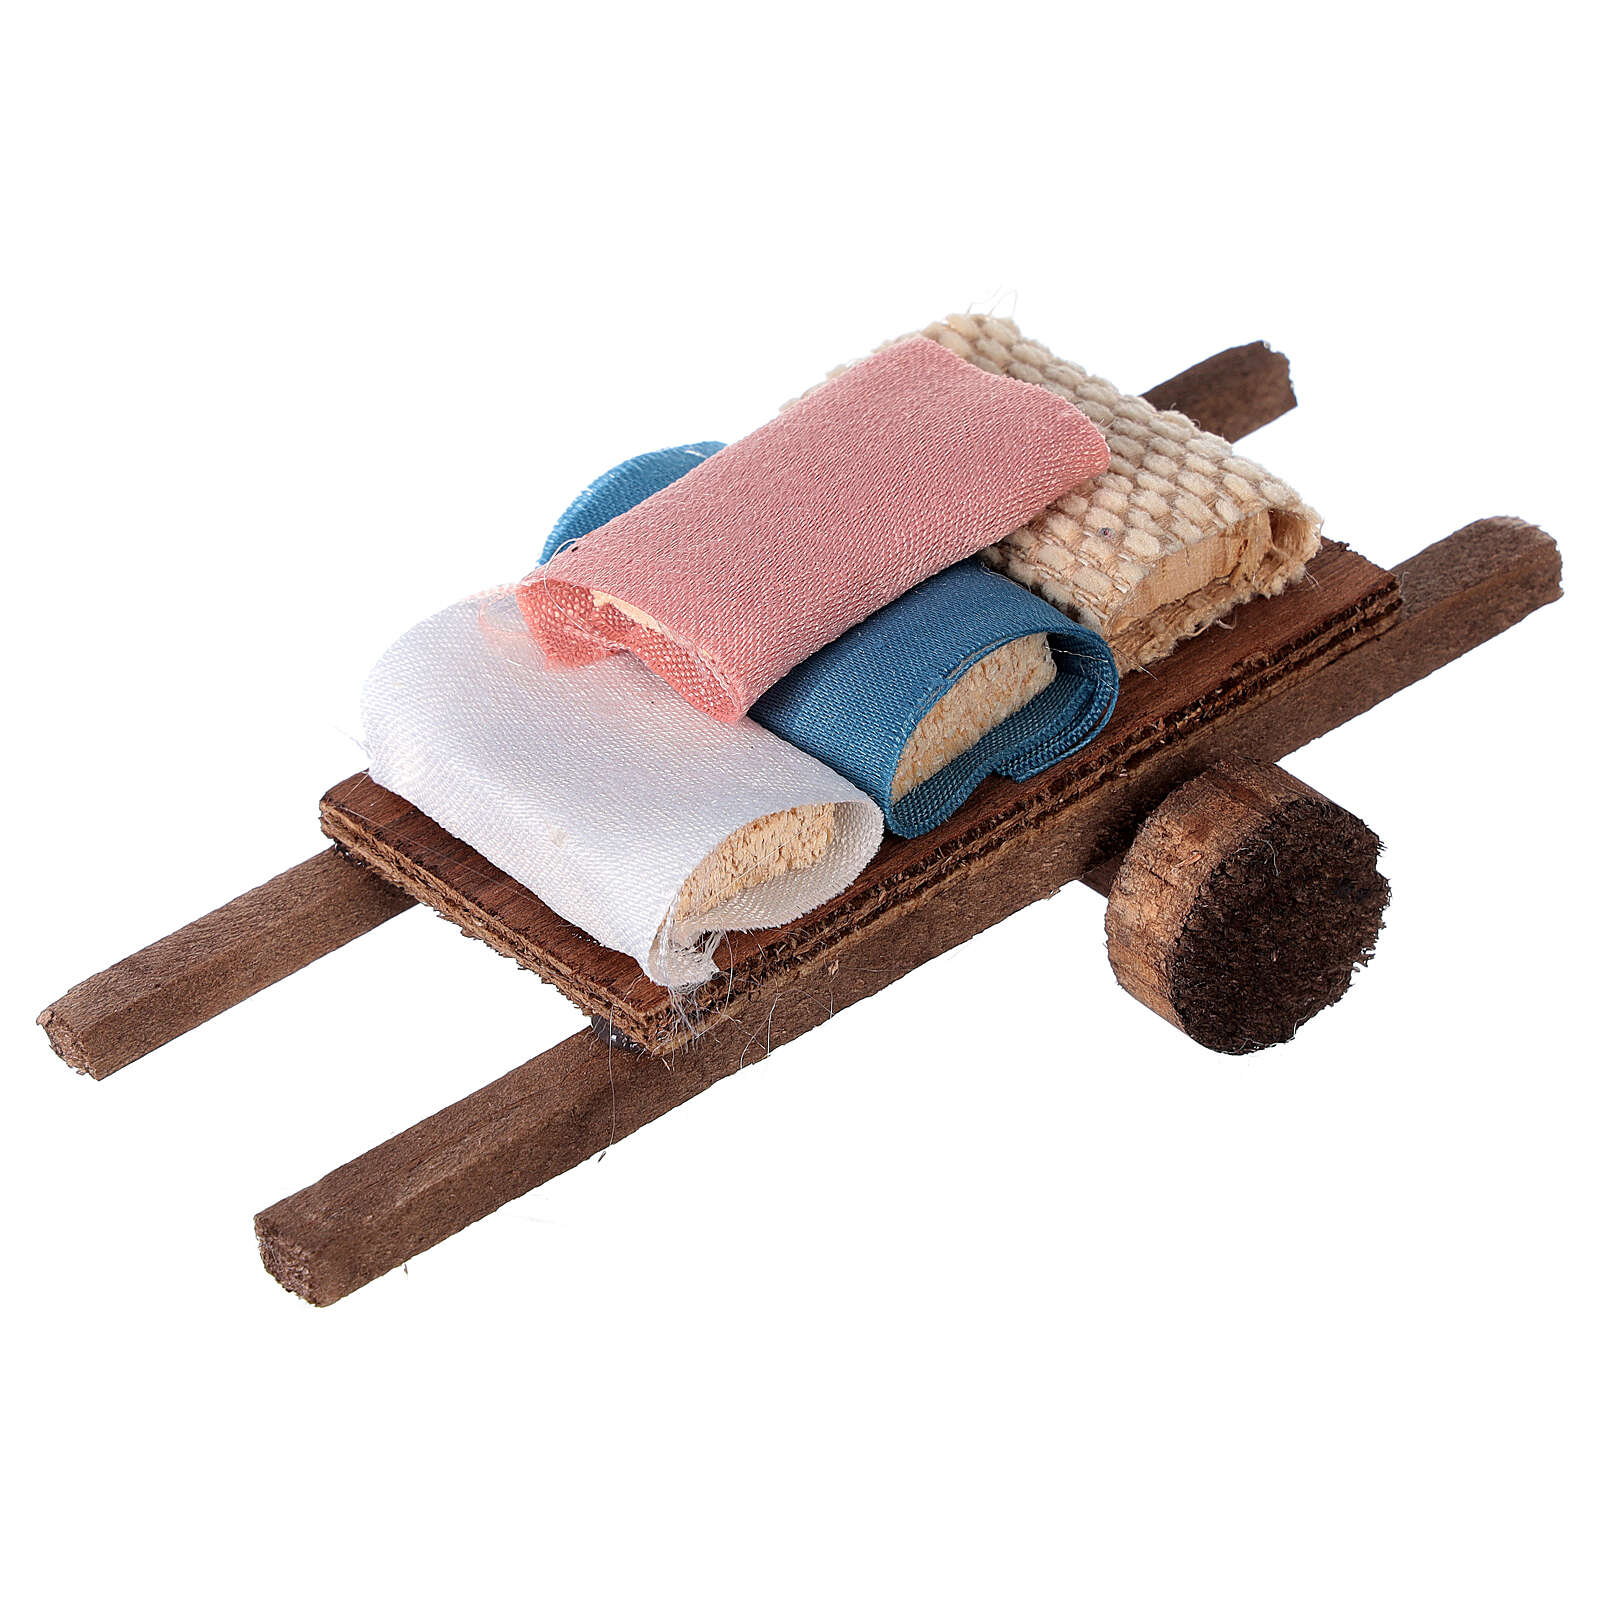 Cart with fabric 6x13x3.5 4